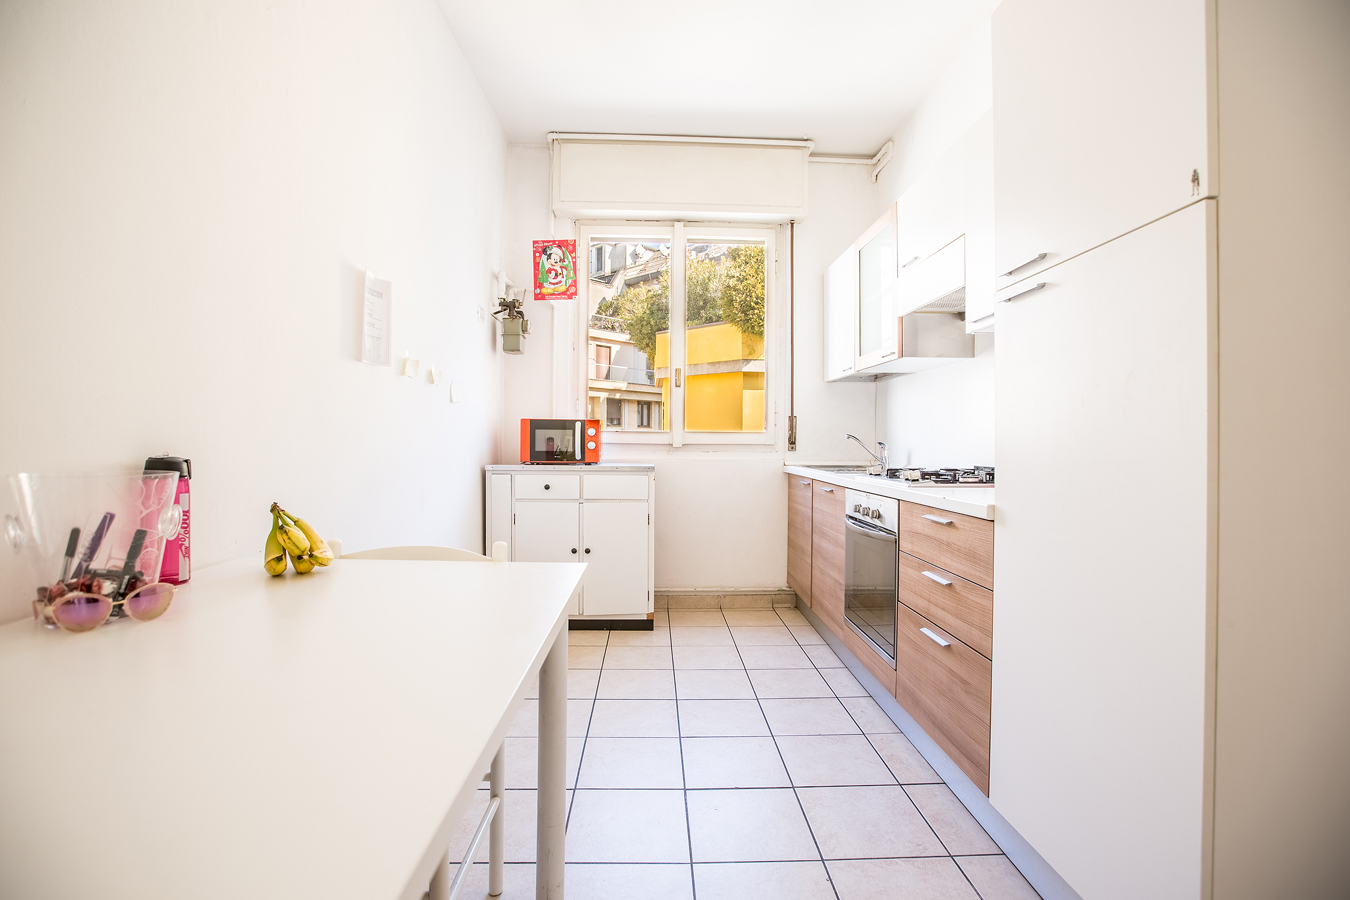 Student Apartment for rent in Via Ruggero Boscovich, 17, 3° floor, in Milano, Italy